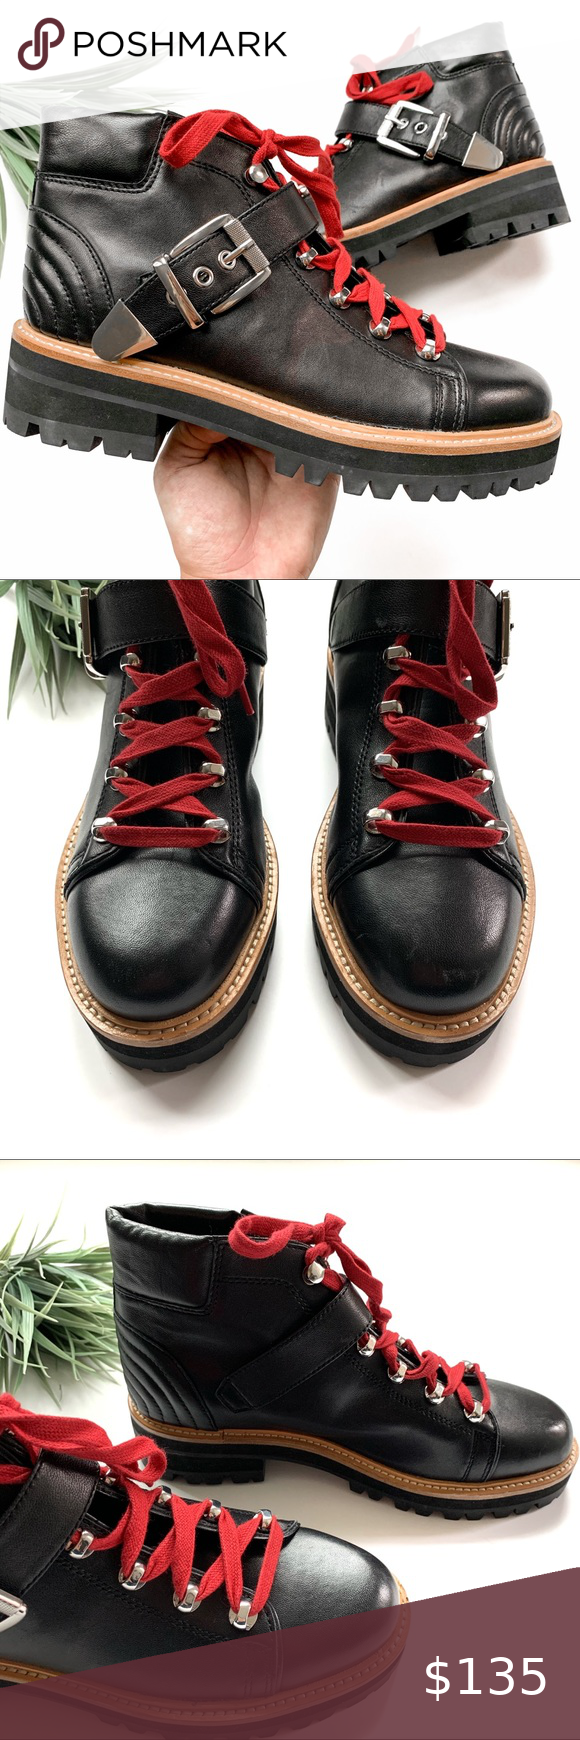 Marc Fisher Indre Leather Hiker Boots